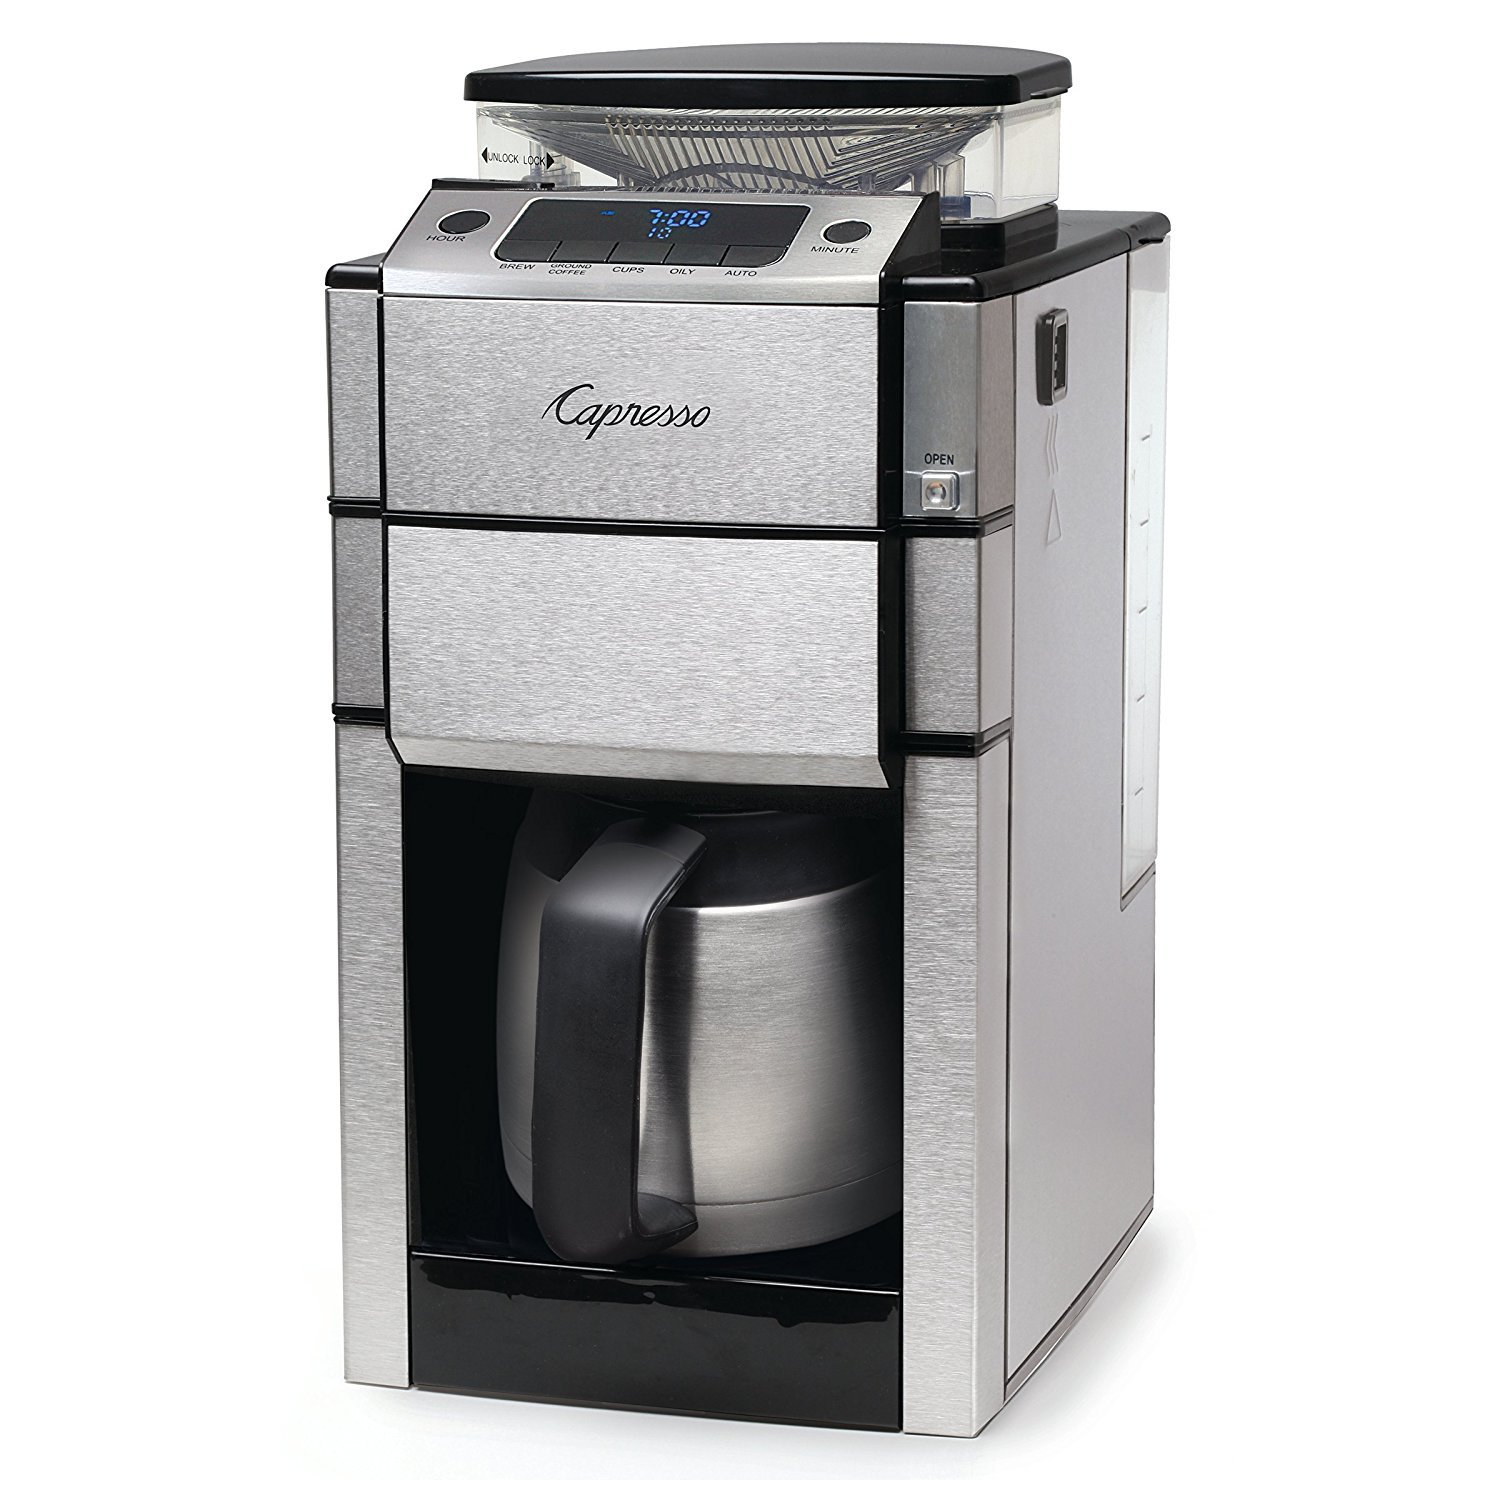 Capresso 488.05 Team Pro Plus Thermal Carafe Coffee Maker, Silver